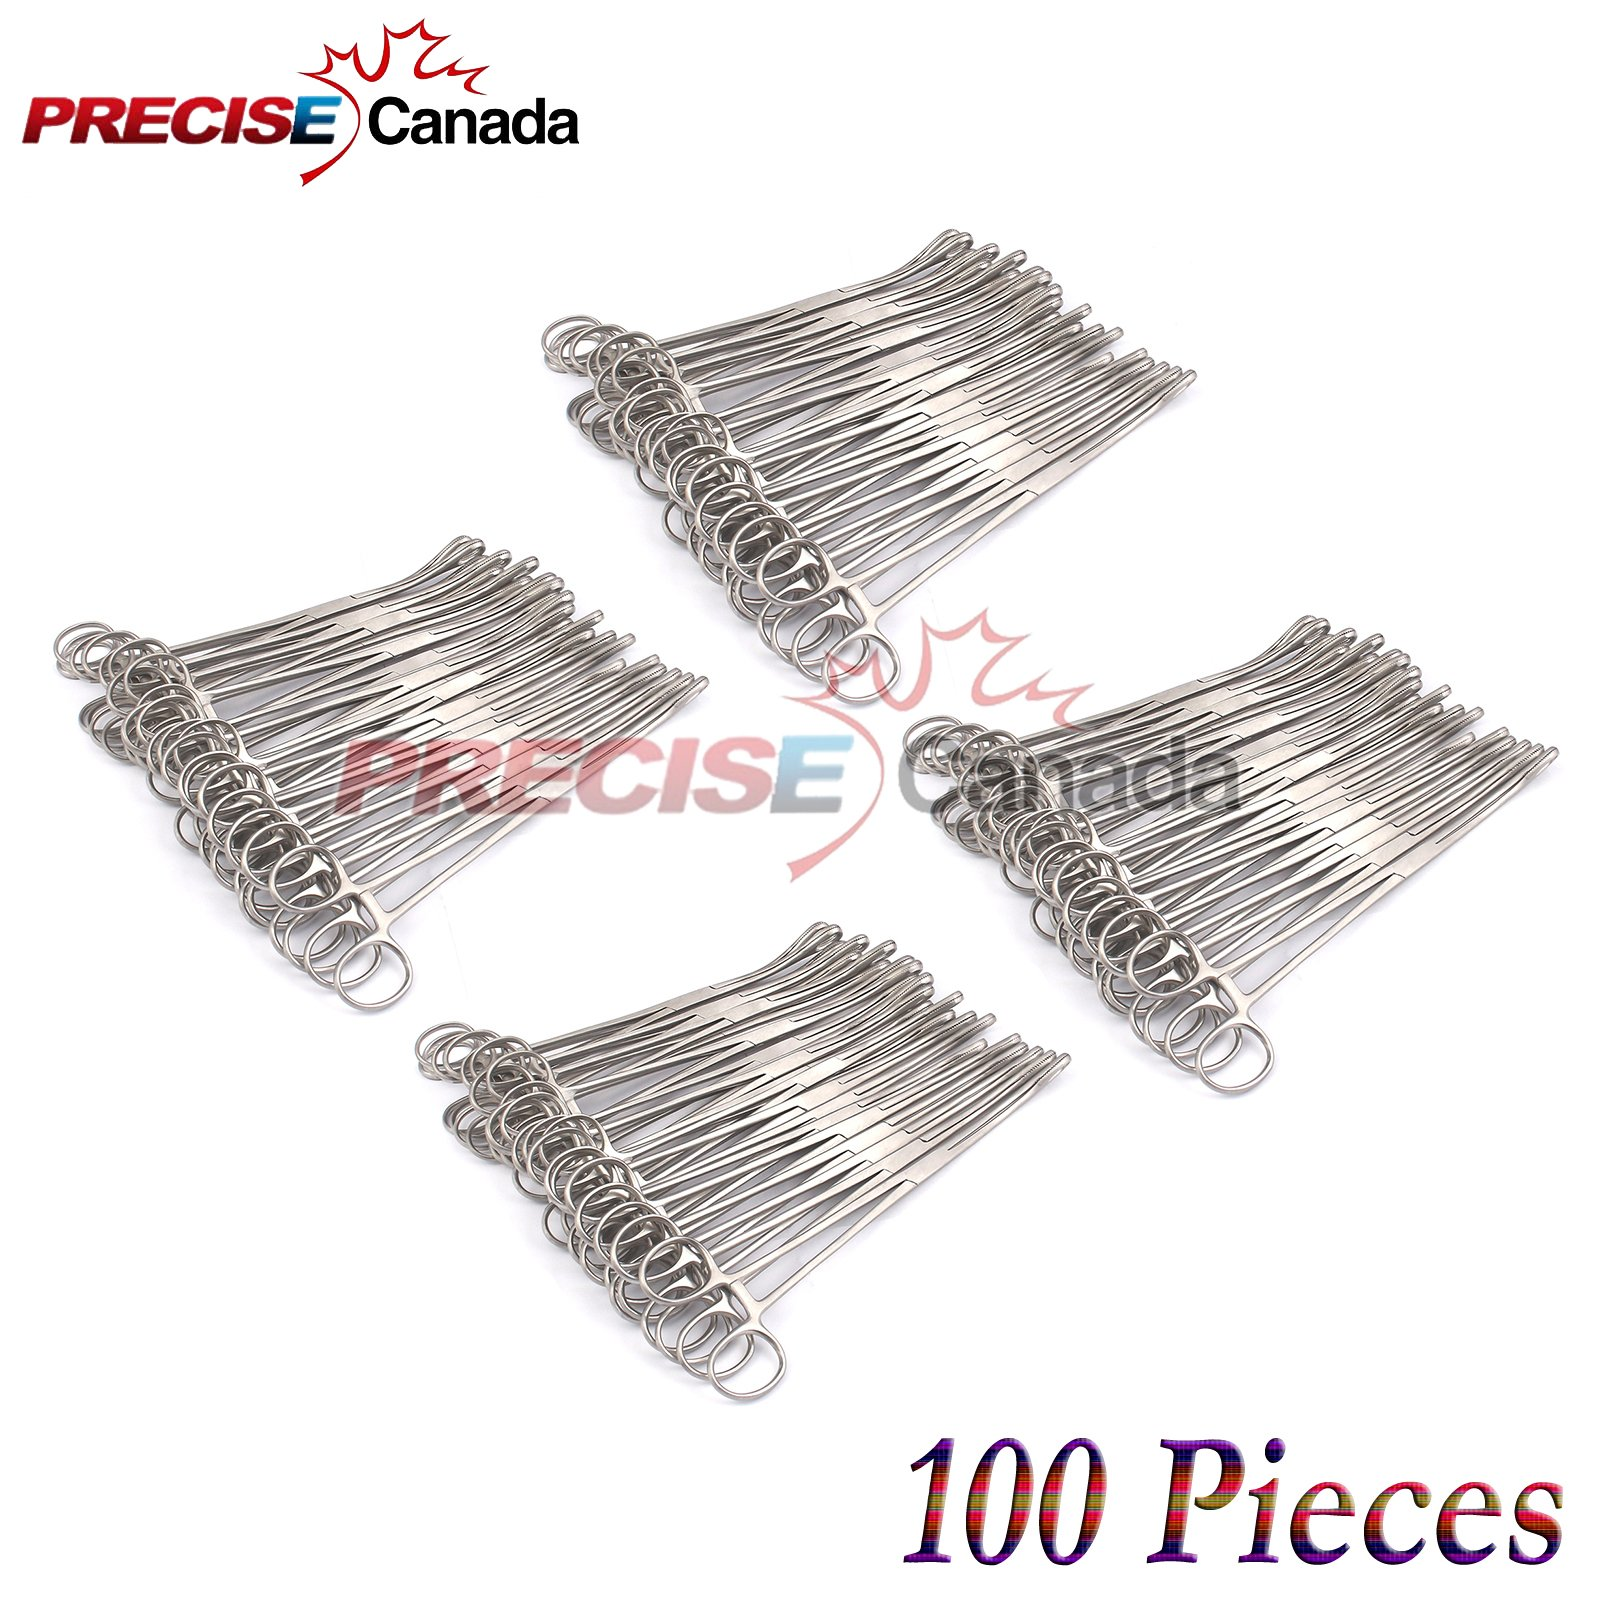 PRECISE CANADA: SET OF 100 SELF-LOCKING SPONGE FORCEPS CURVED 10'' BODY PIERCING STAINLESS STEEL